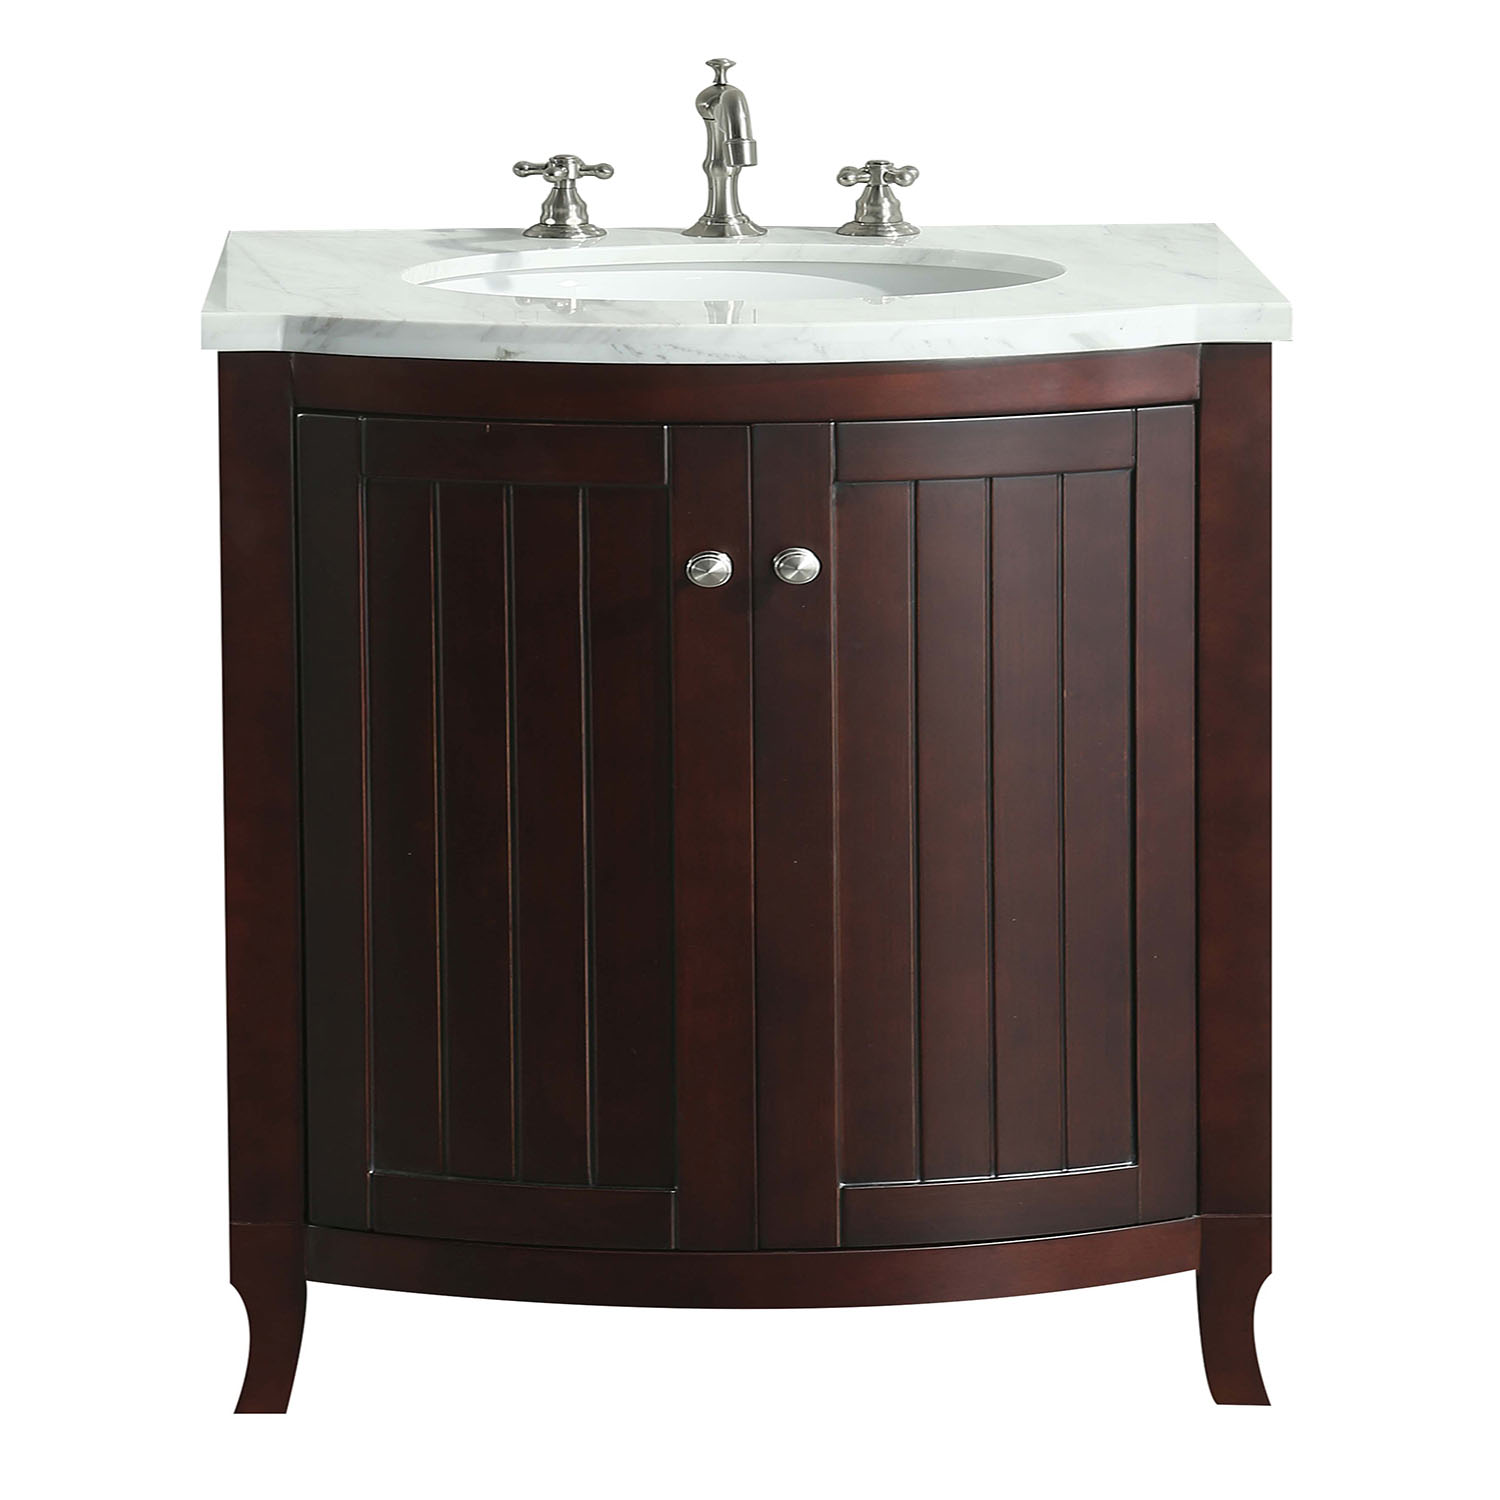 "EVVN04 30TK A Main - Eviva Odessa Zinx+ Dark Teak 30"" Bathroom Vanity with White Carrera Marble Counter-top and Porcelain Sink"